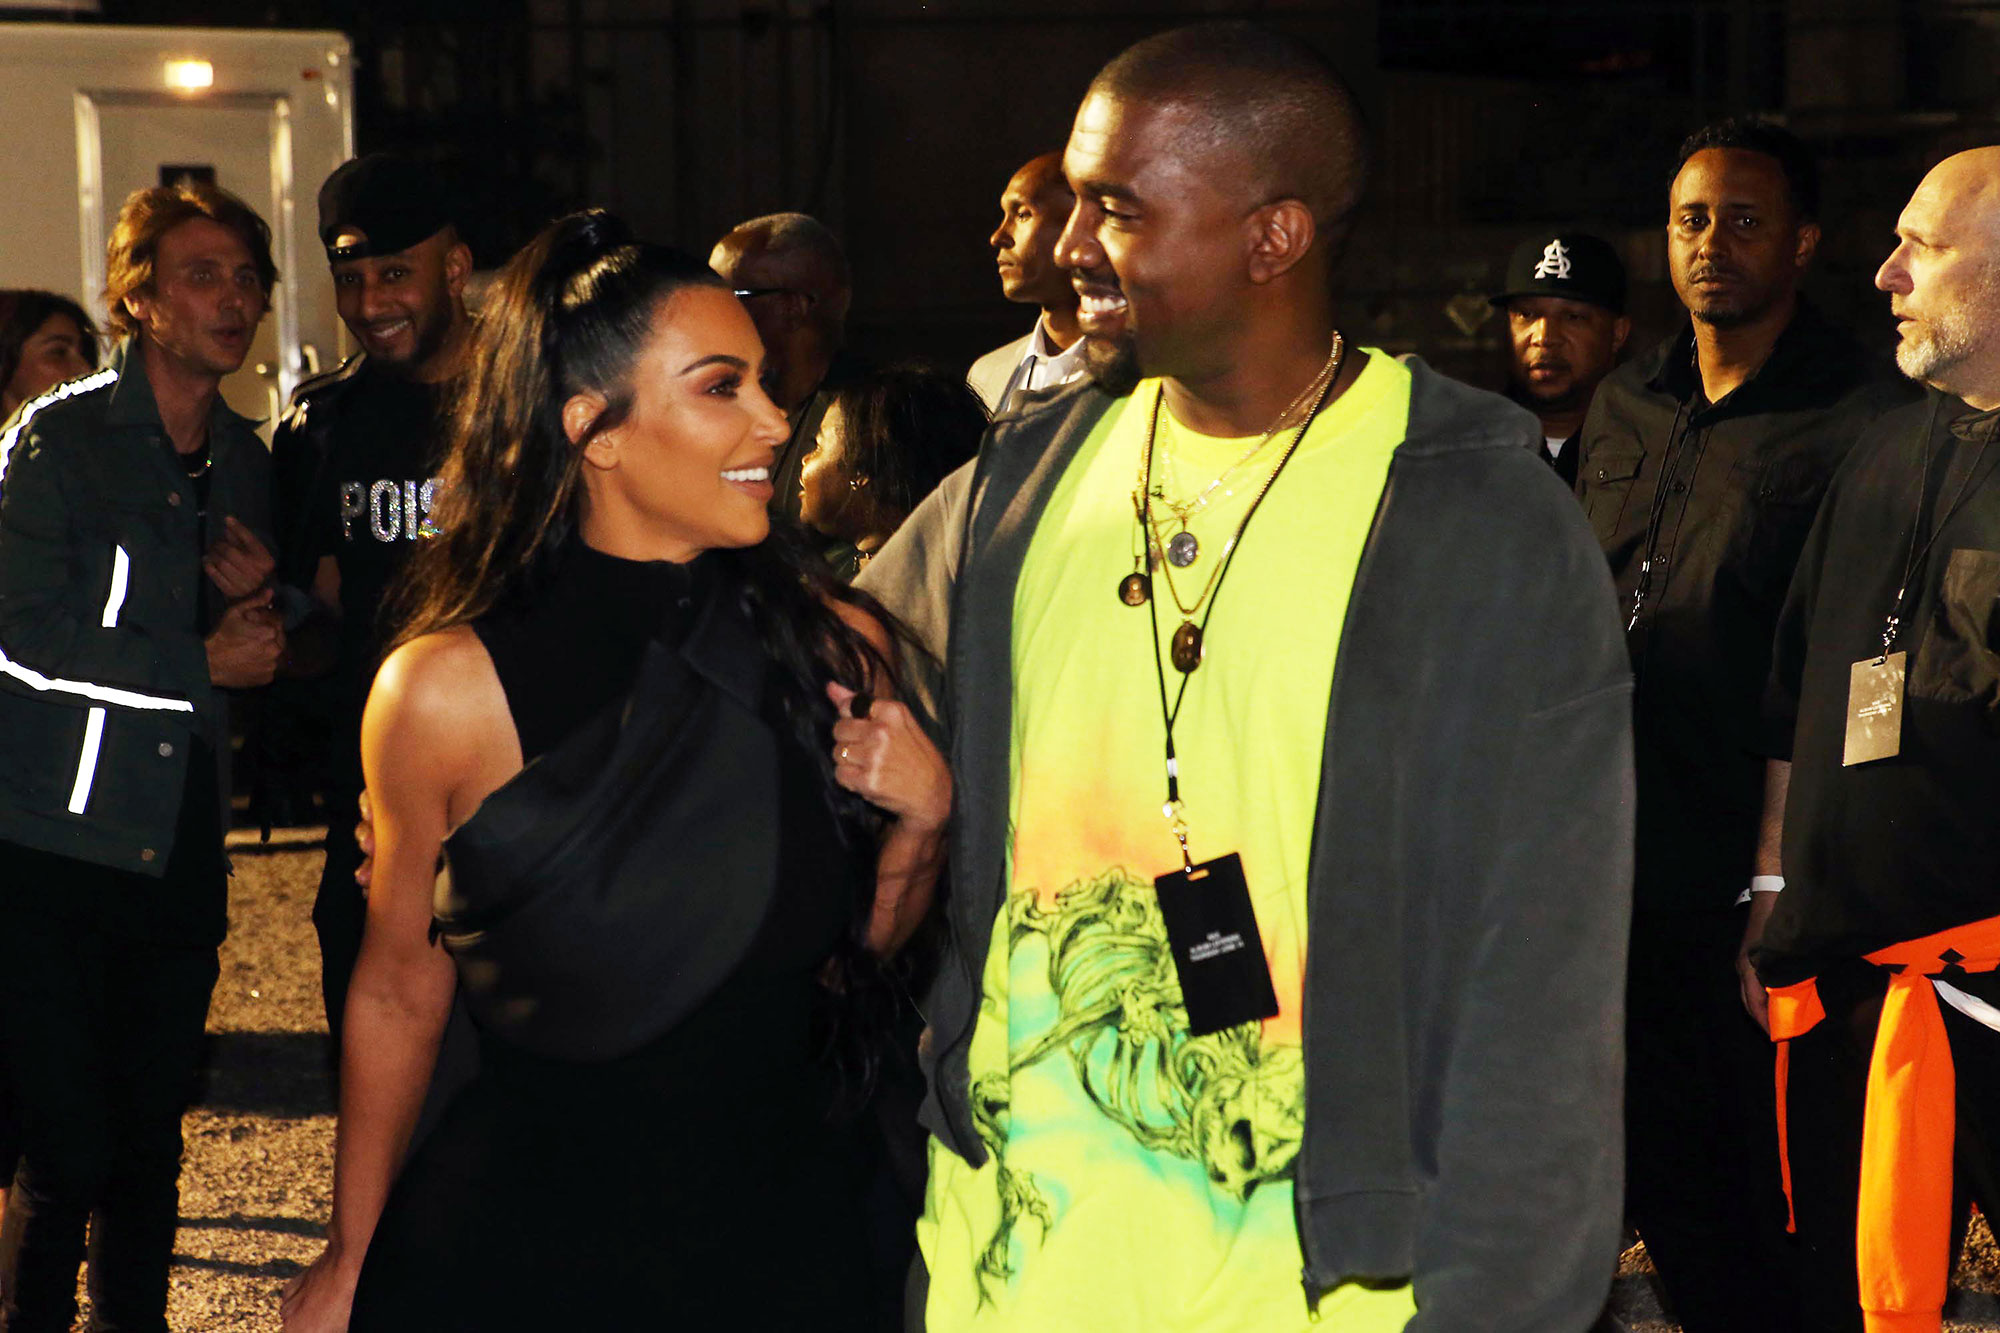 71e09ed7ff0f7 Kim Kardashian Shows 'Love' for Kanye West After His 'Saturday Night Live'  Controversy